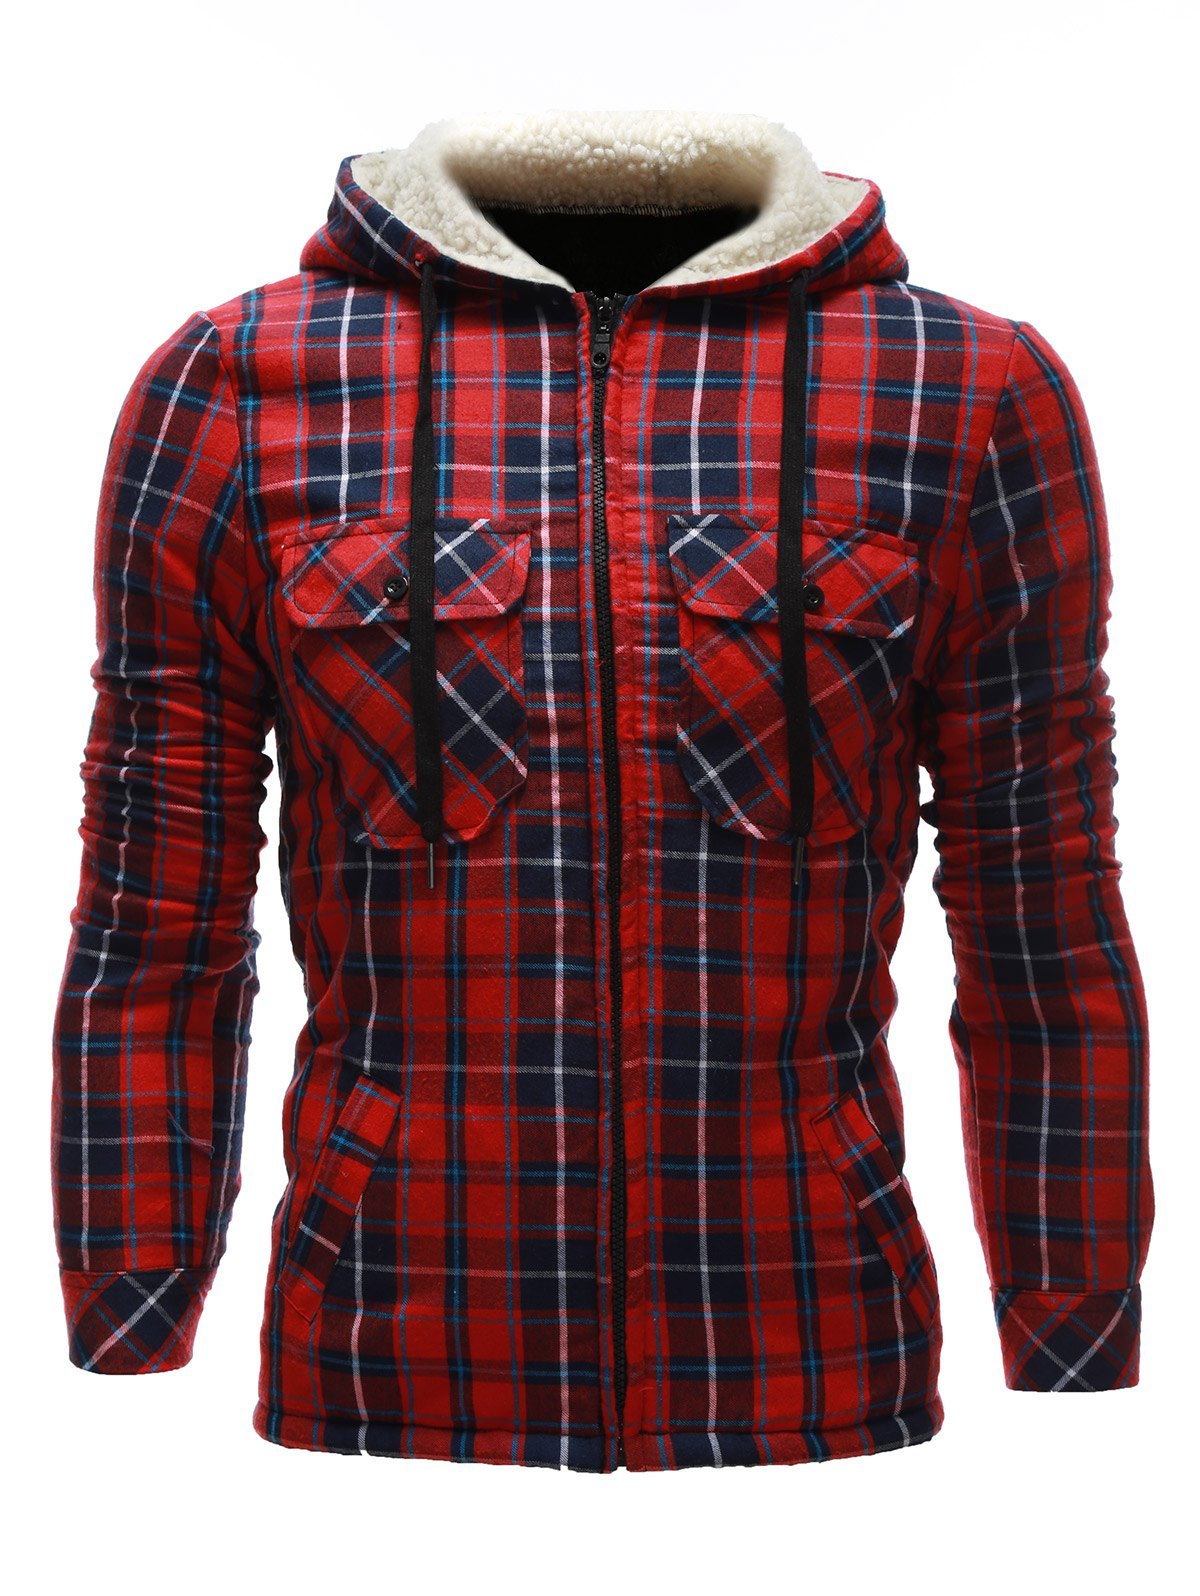 Zip Up Flocking Hooded Pocket Plaid Jacket - RED M